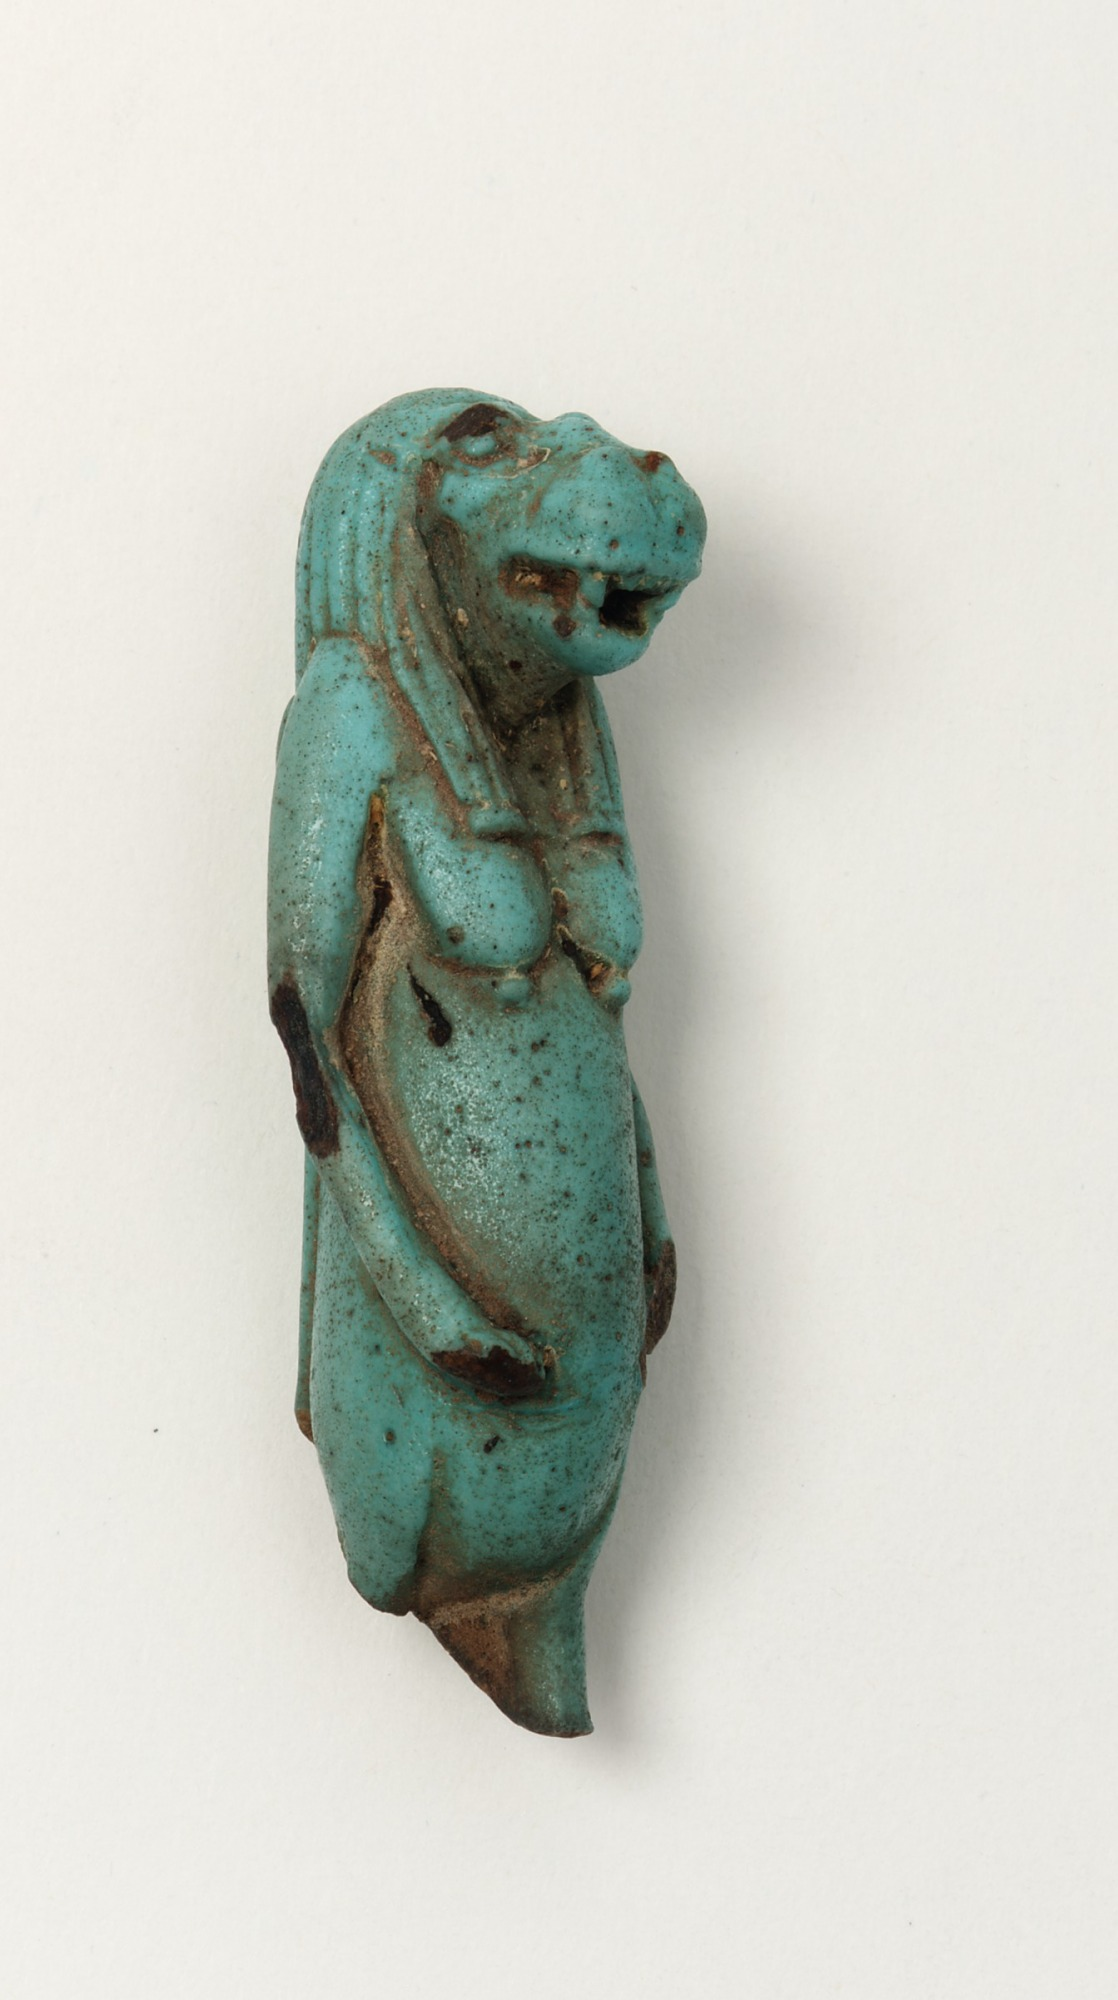 proper right: Amulet of the goddess Taweret